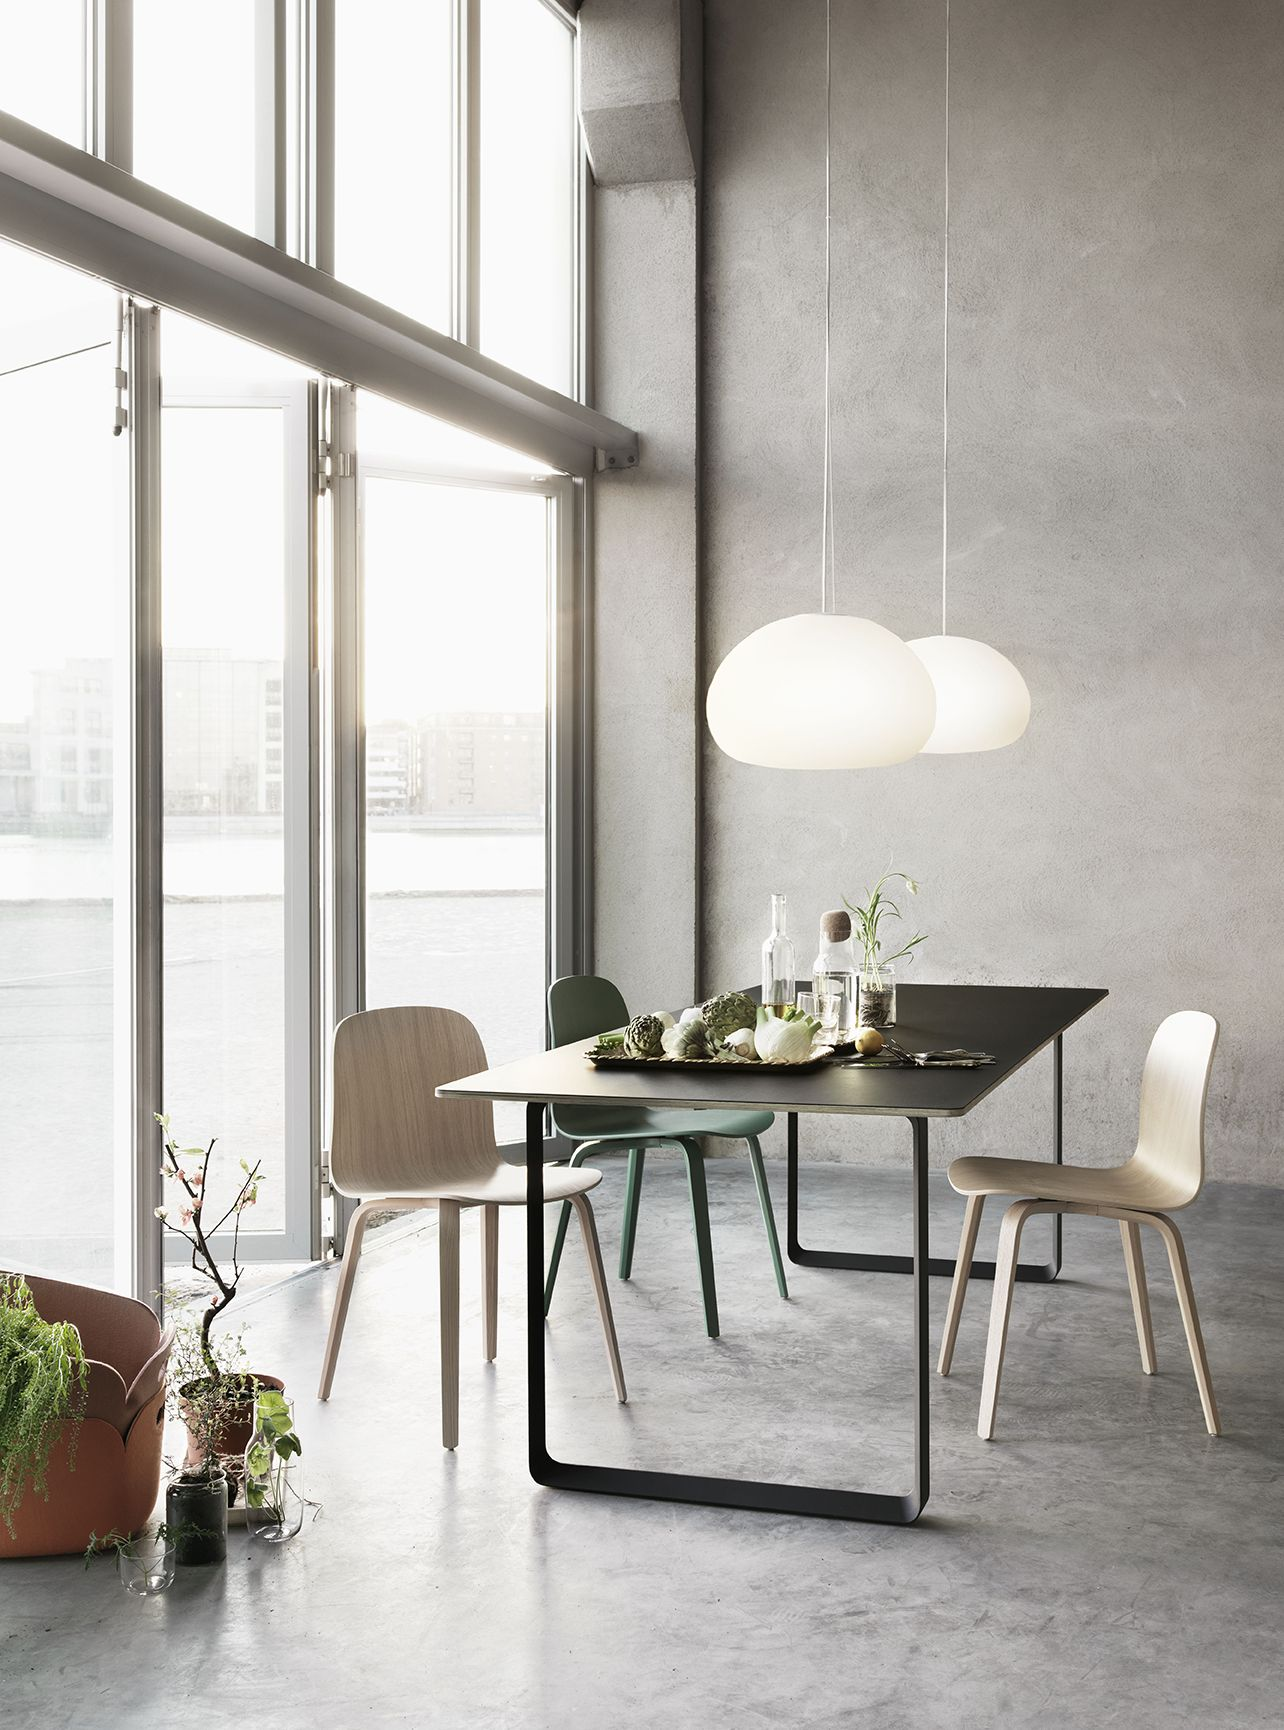 Grande Table Scandinave Muuto Le Design Scandinave Moderne Lighting Pinterest